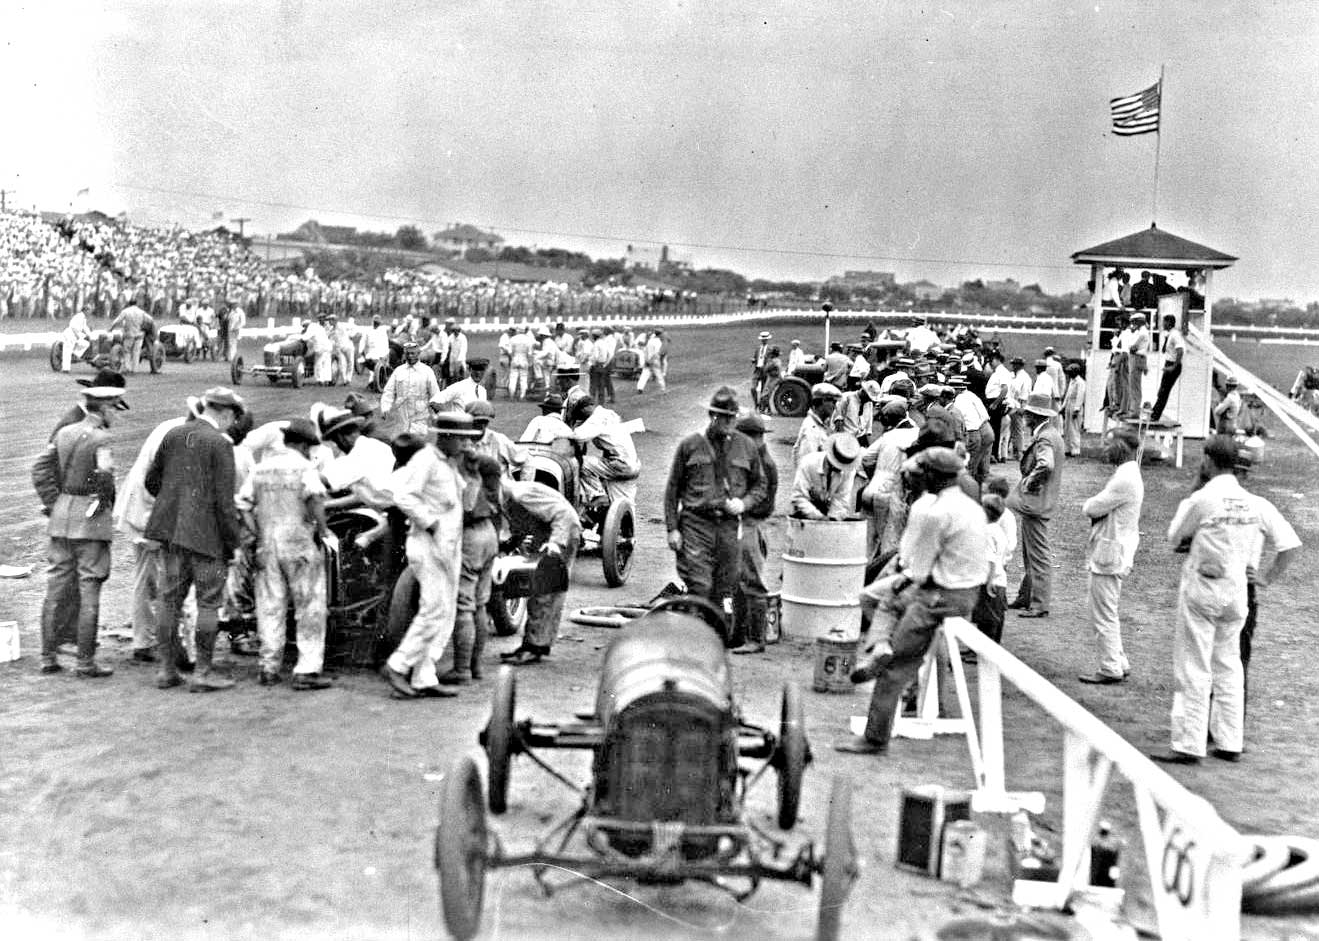 Racing Cars at the West Texas Fair at Abilene – Part II | The Old Motor